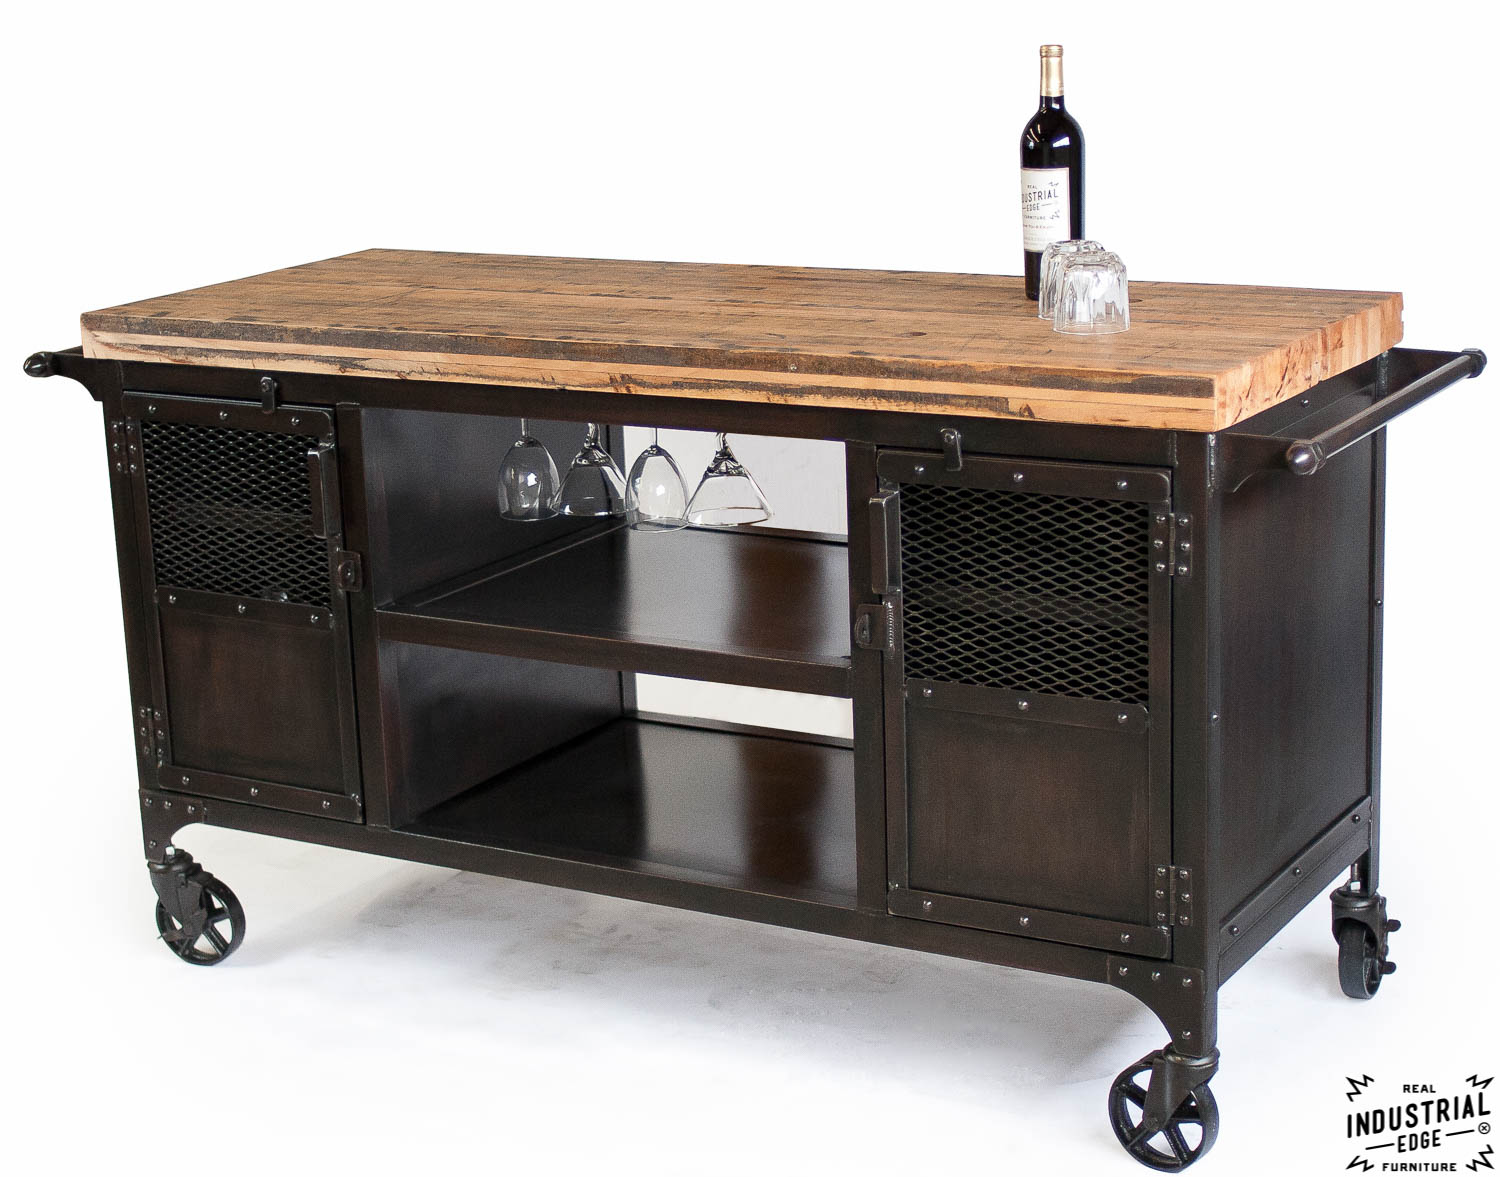 industrial mini bar reclaimed train car floor top real industrial edge furniture custom. Black Bedroom Furniture Sets. Home Design Ideas